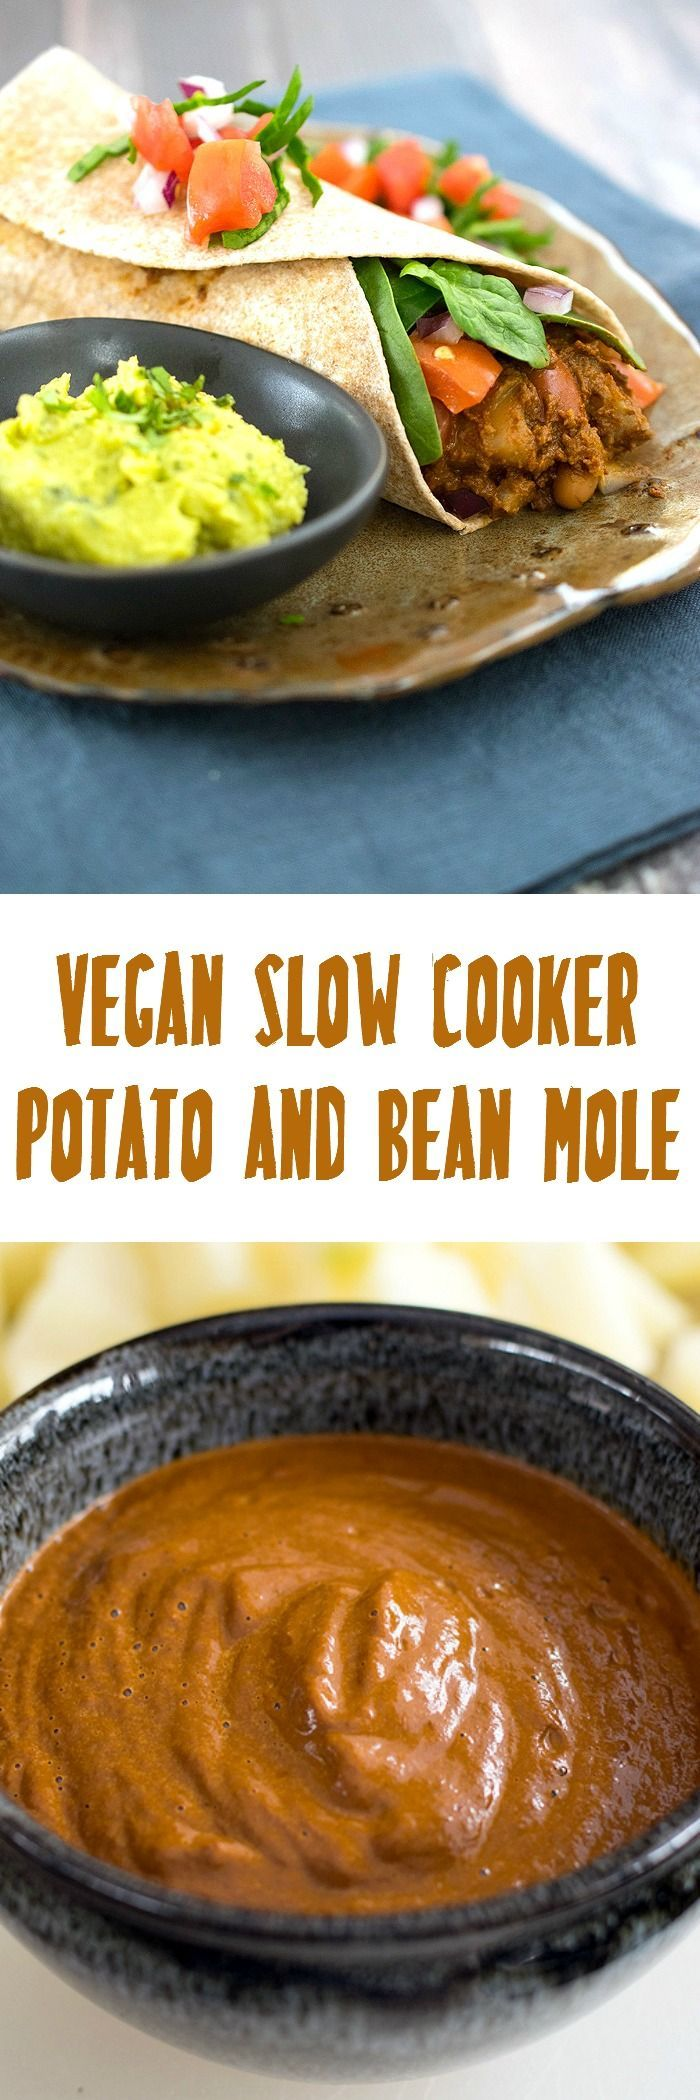 Vegan Slow Cooker Potato and Bean Mole is  a hearty dinner that's perfect for a winter night. served over rice, in tacos or burritos.